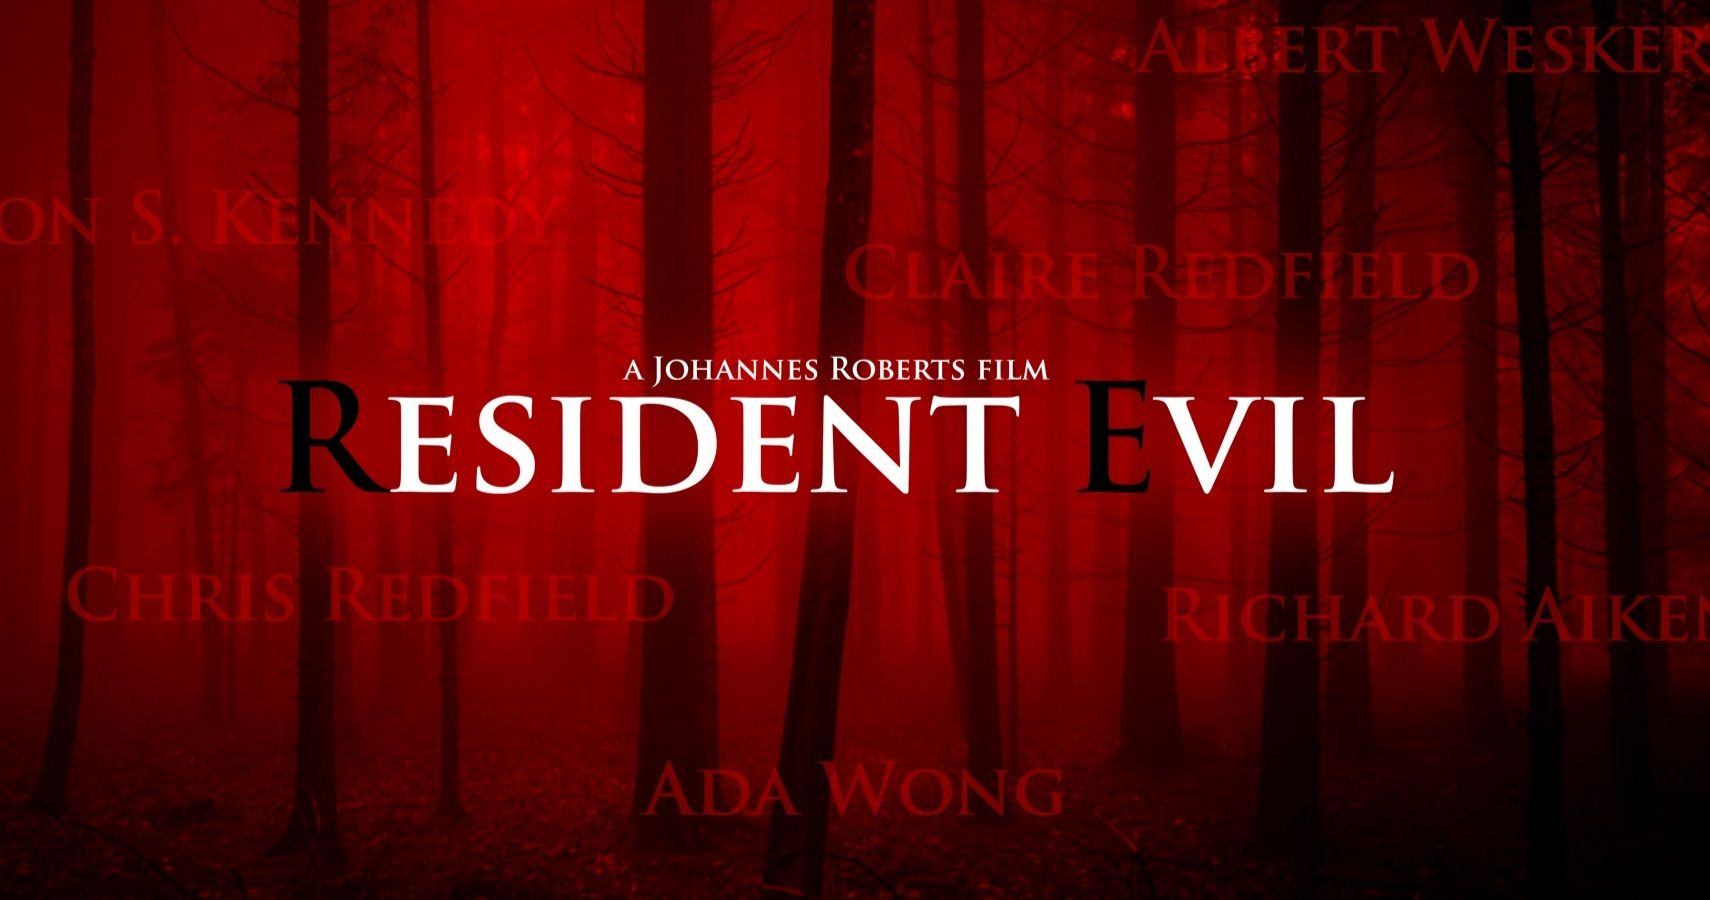 That Resident Evil Movie Poster Is Actually Fan Art